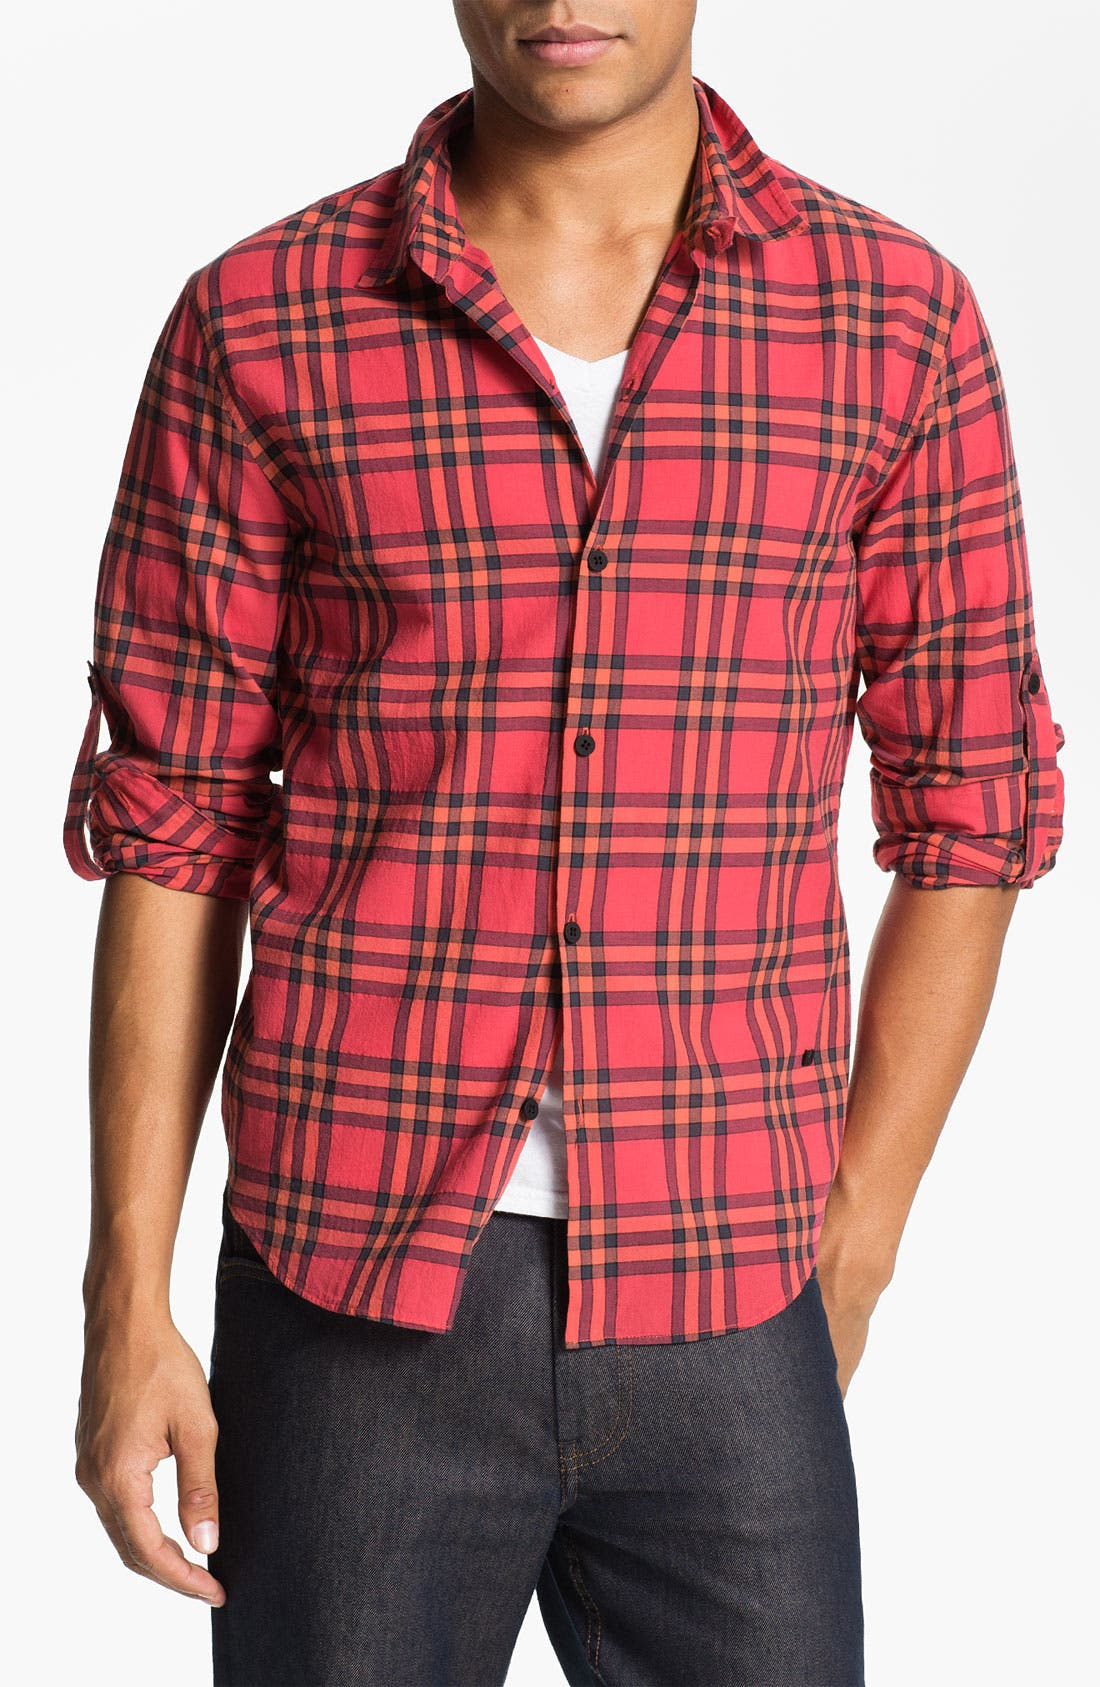 Alternate Image 1 Selected - MARC BY MARC JACOBS 'Nico' Plaid Woven Shirt